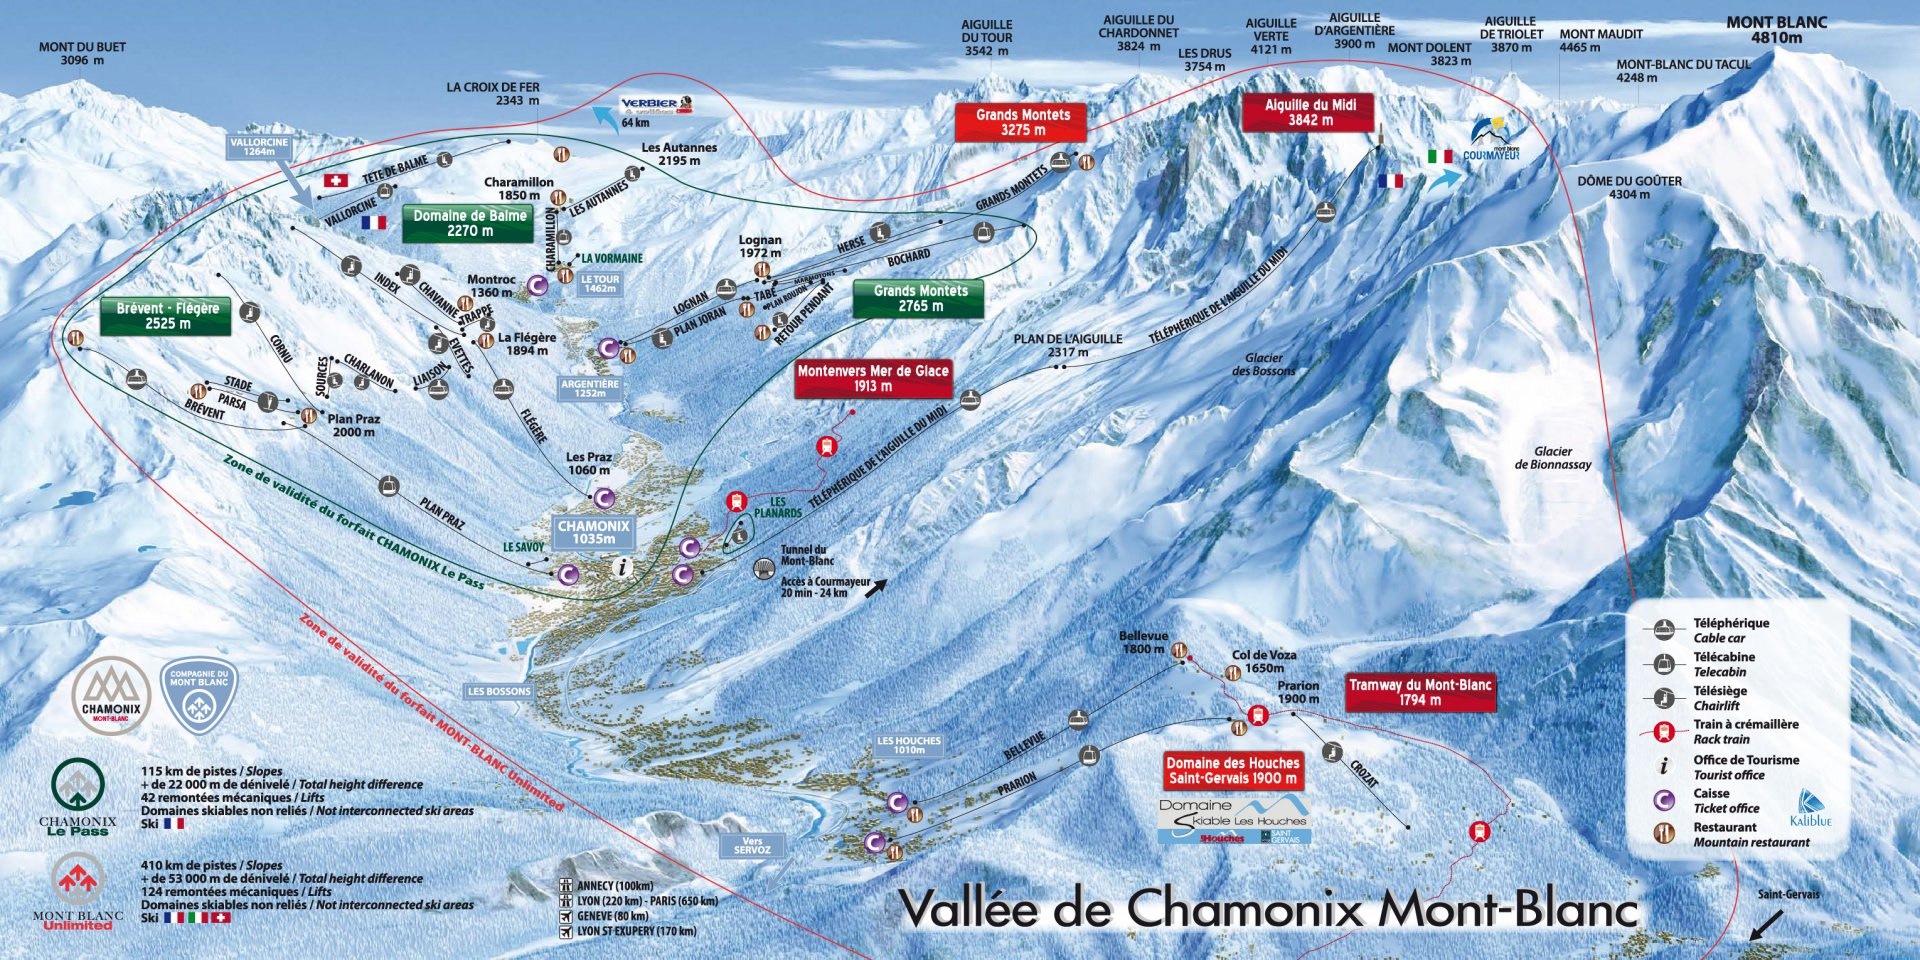 Chamonix Piste Map and Ski Area